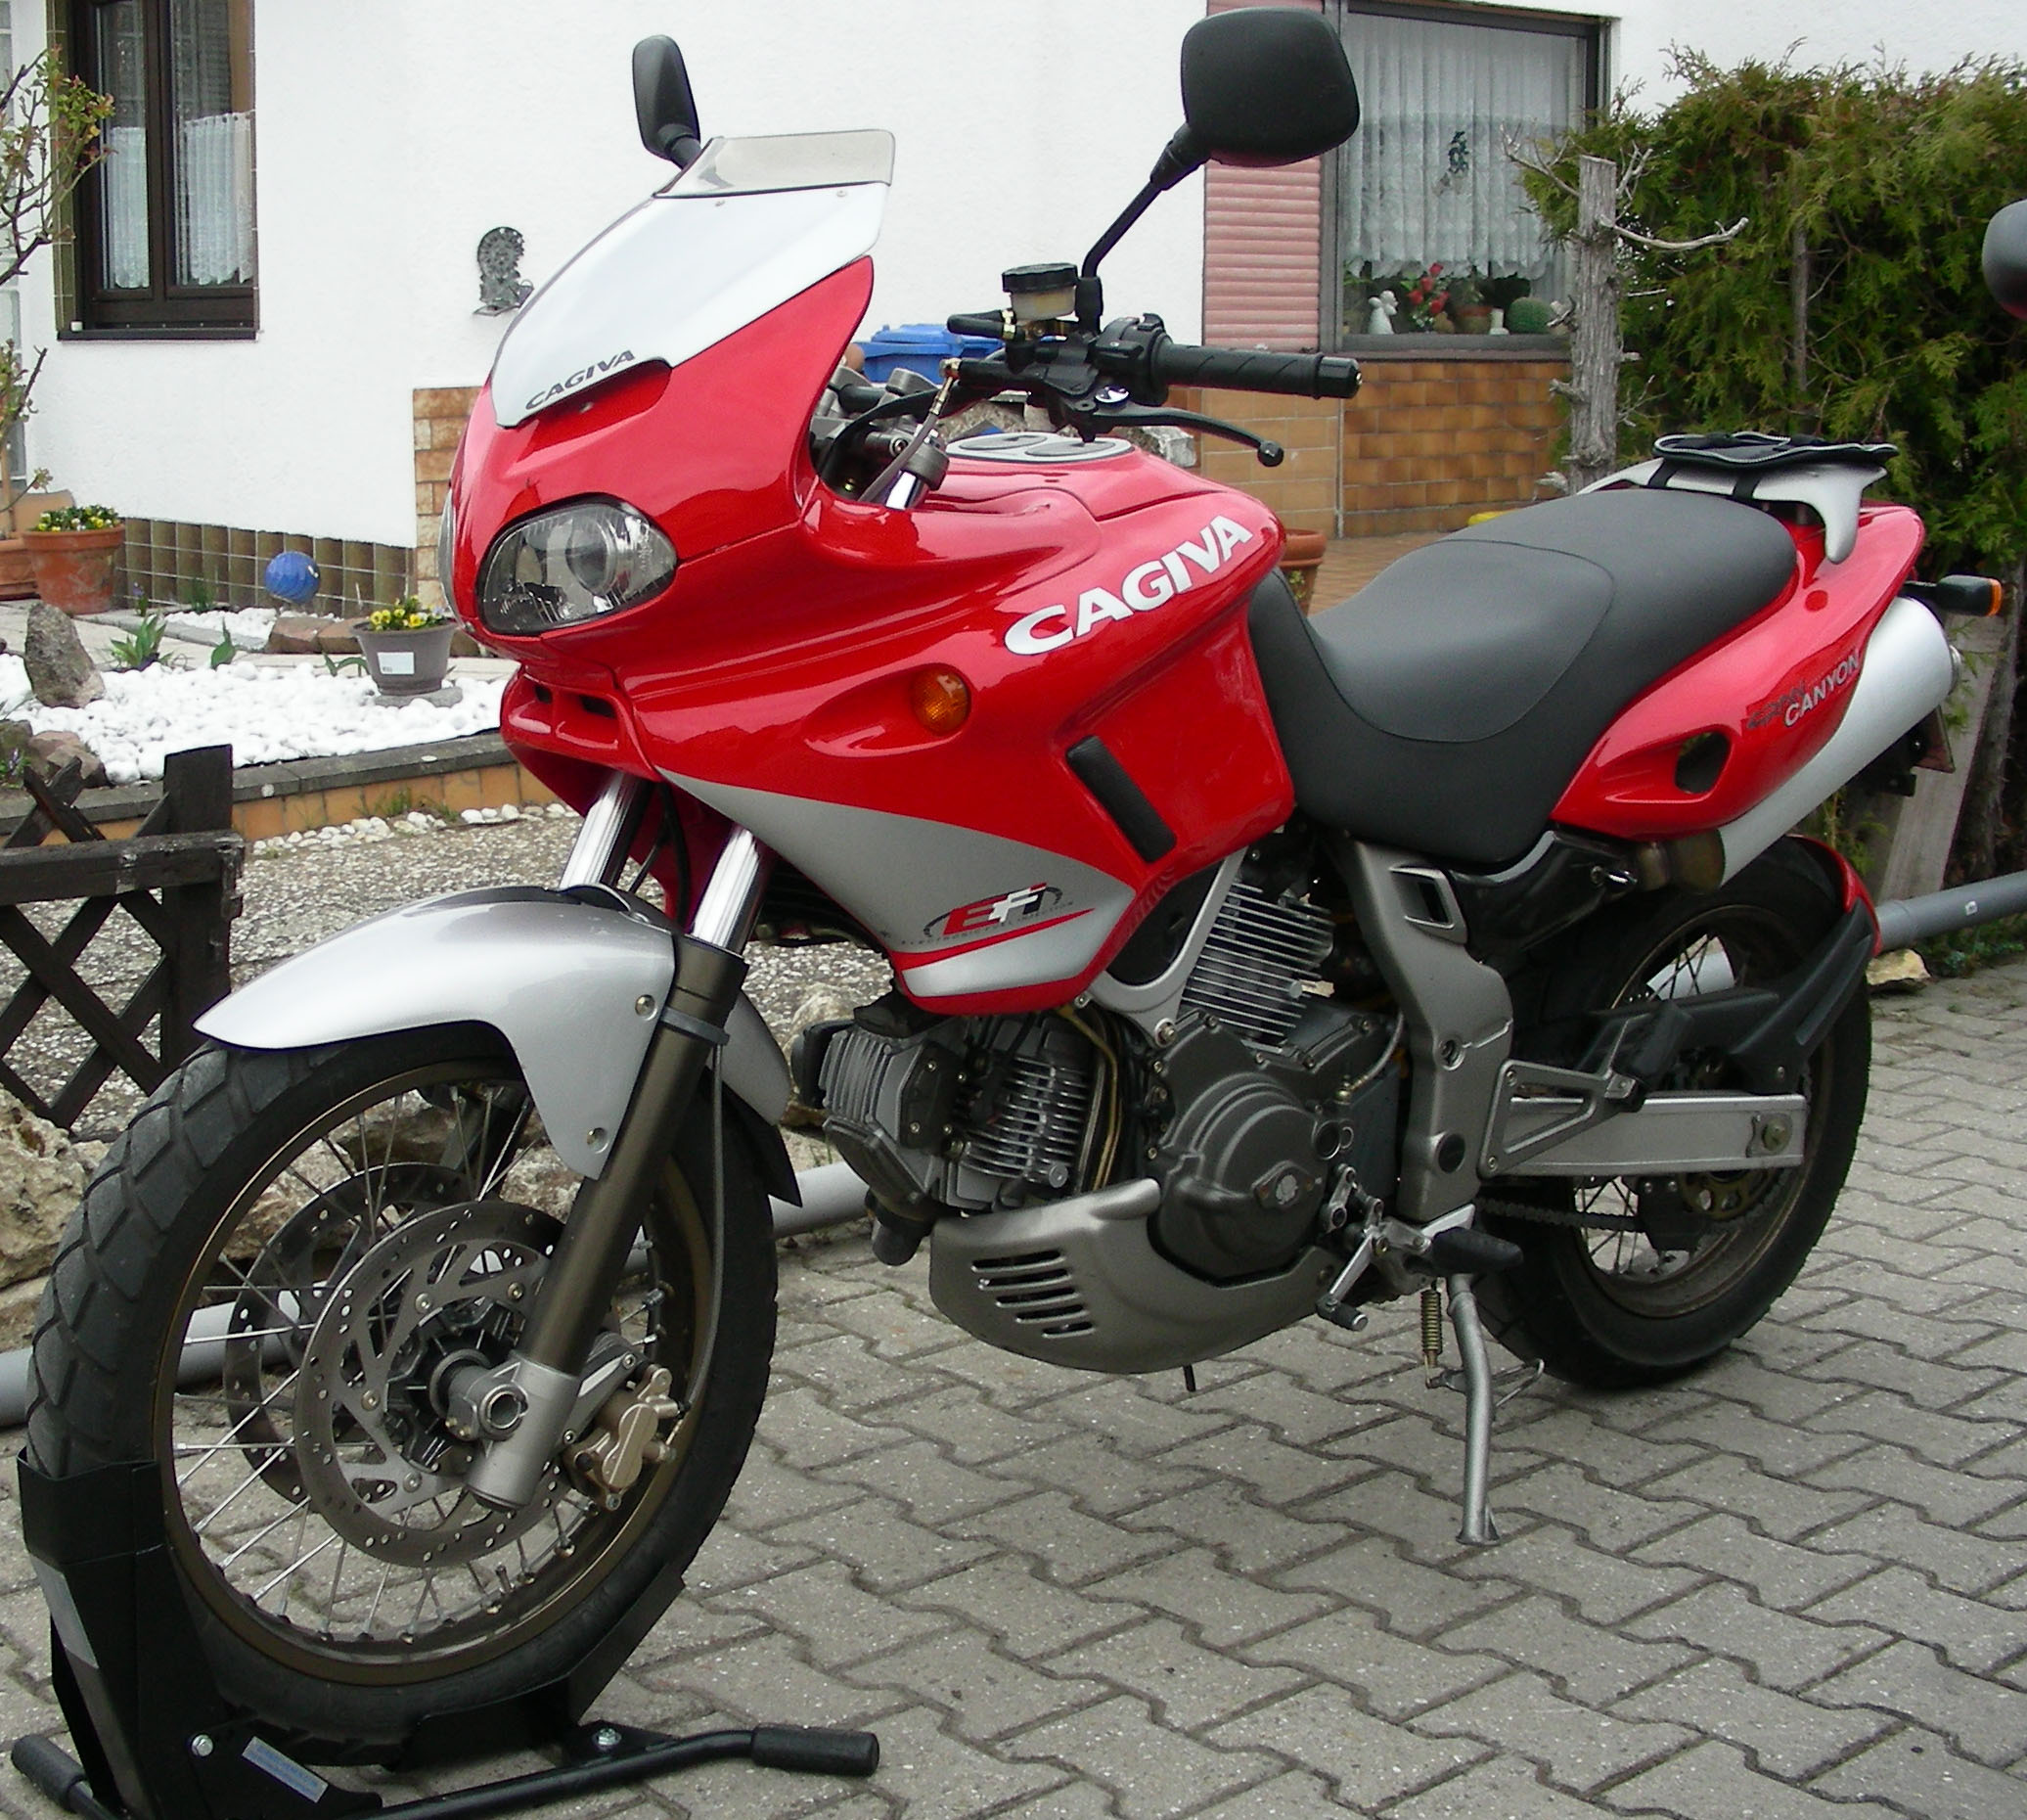 Cagiva Grand Canyon 900 IE 1998 images #69252